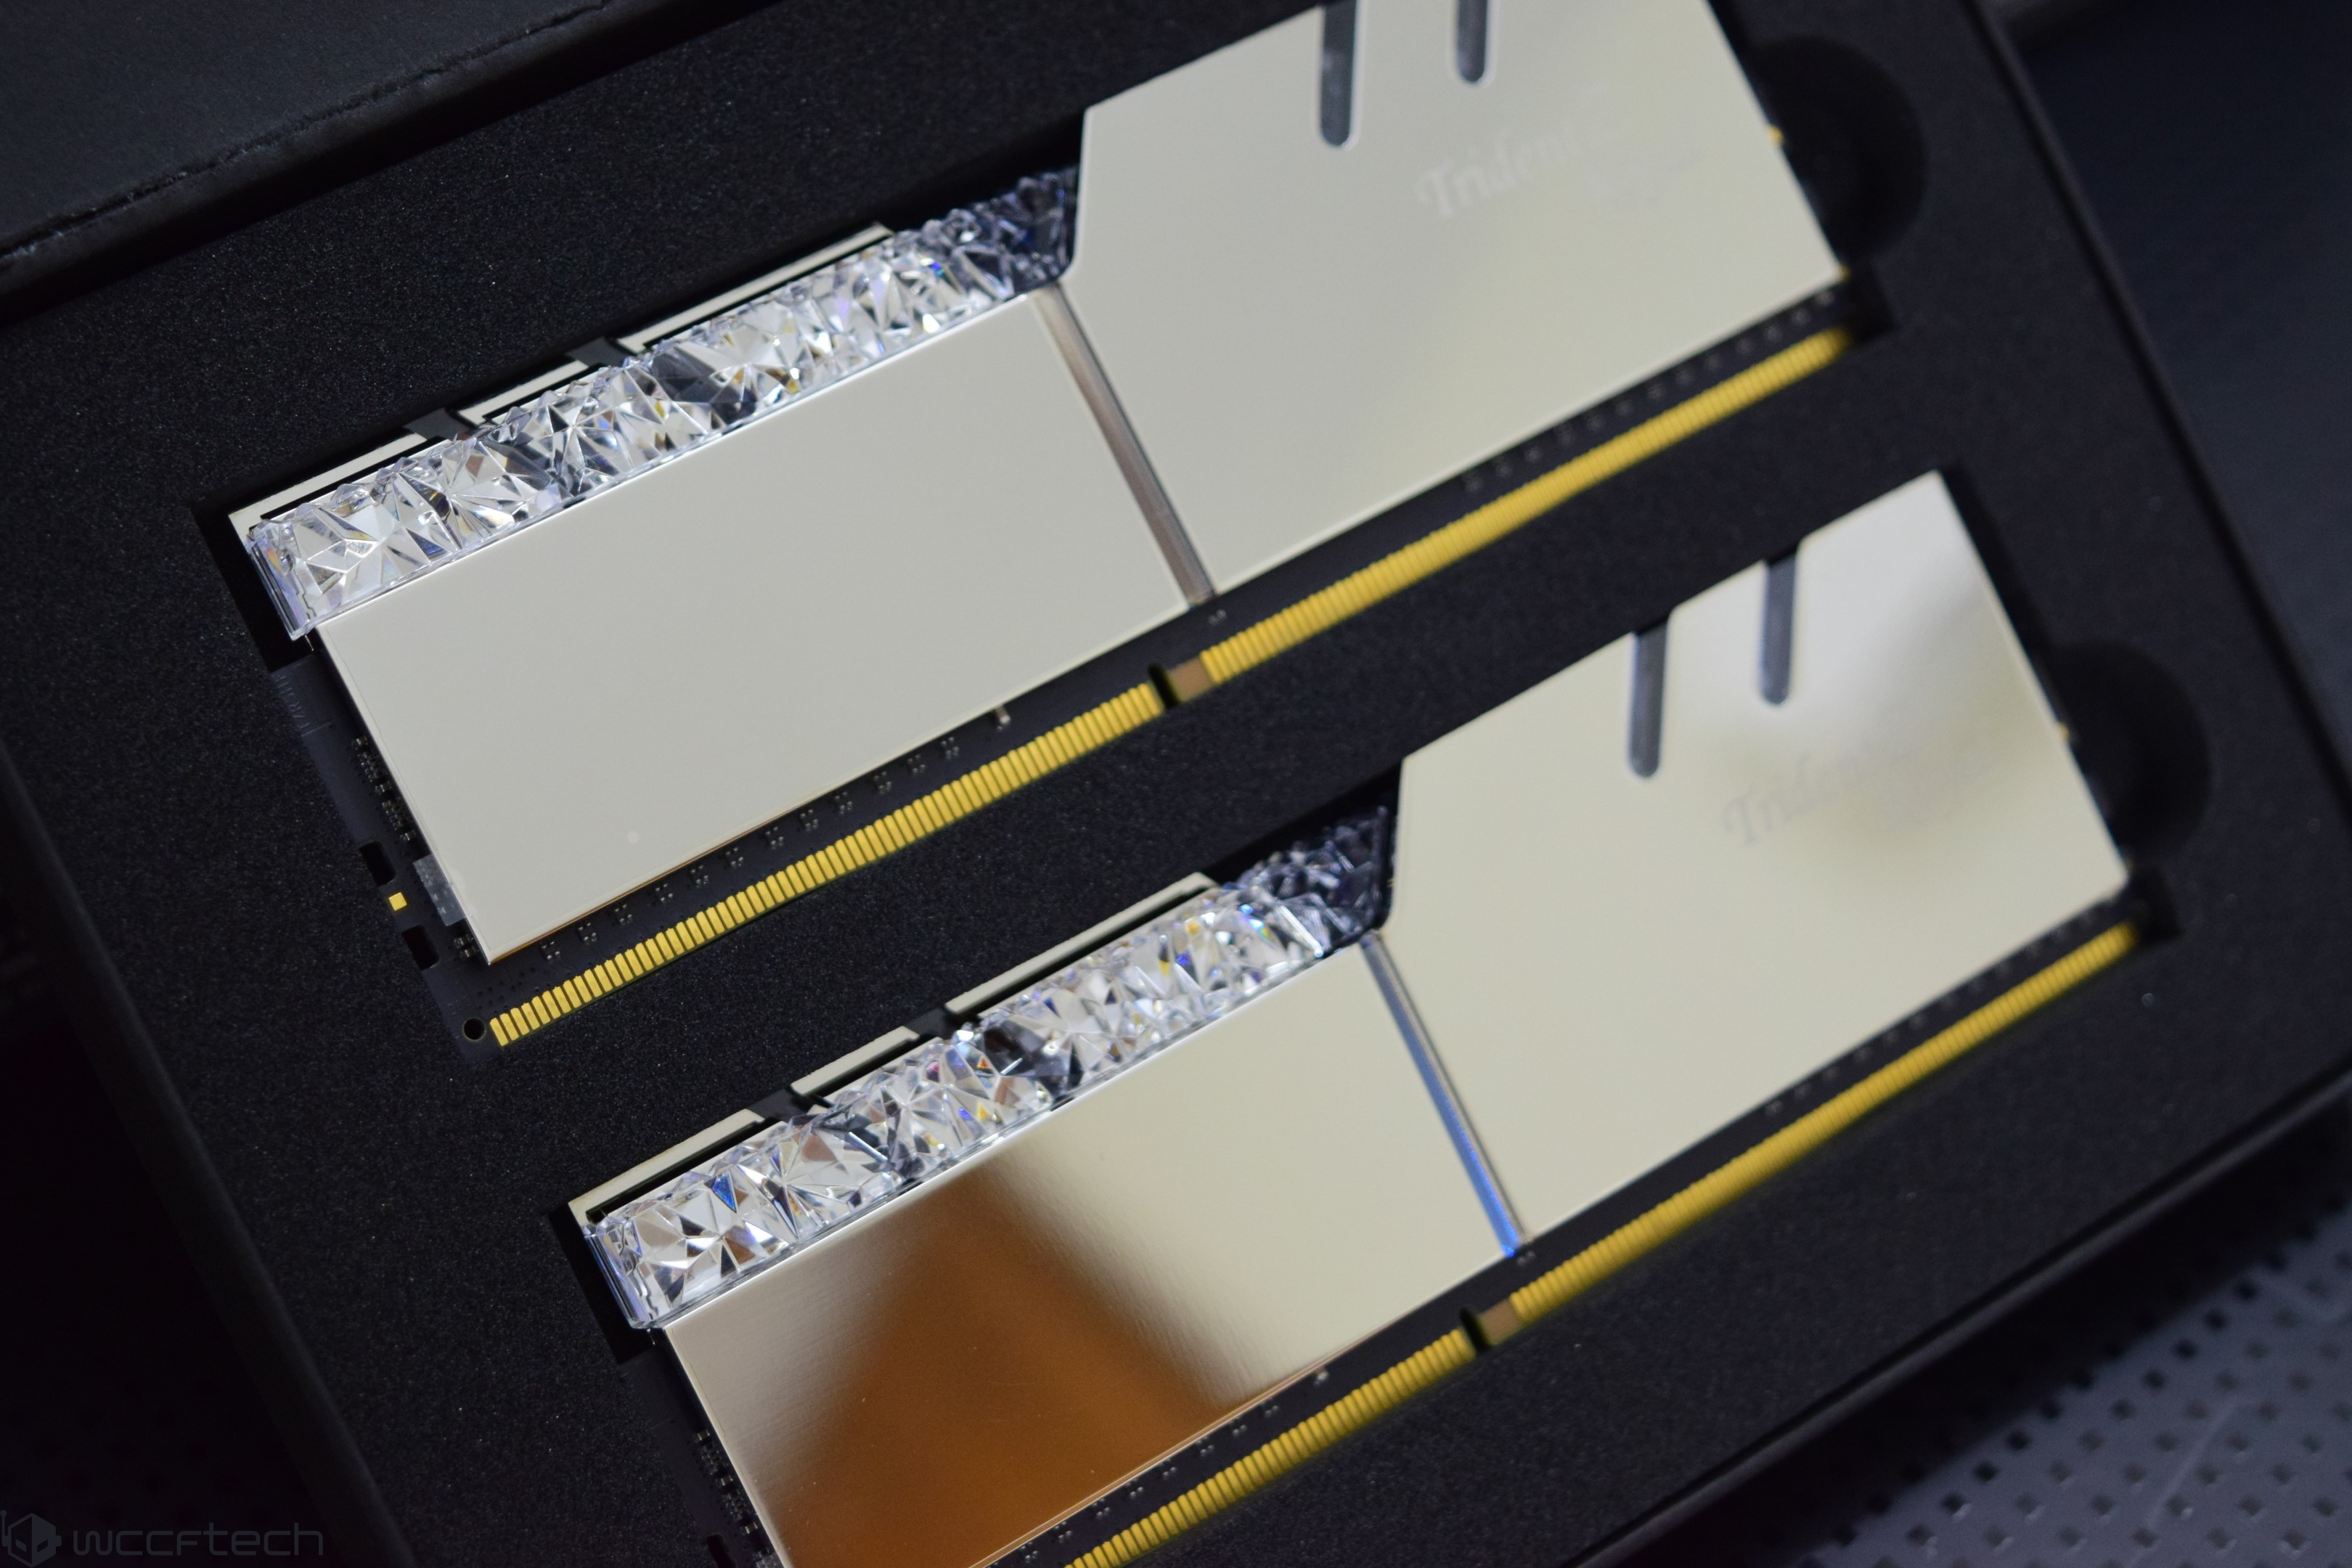 G Skill Trident Z Royal RGB 16 GB DDR4 4000 MHz Memory Kit Review